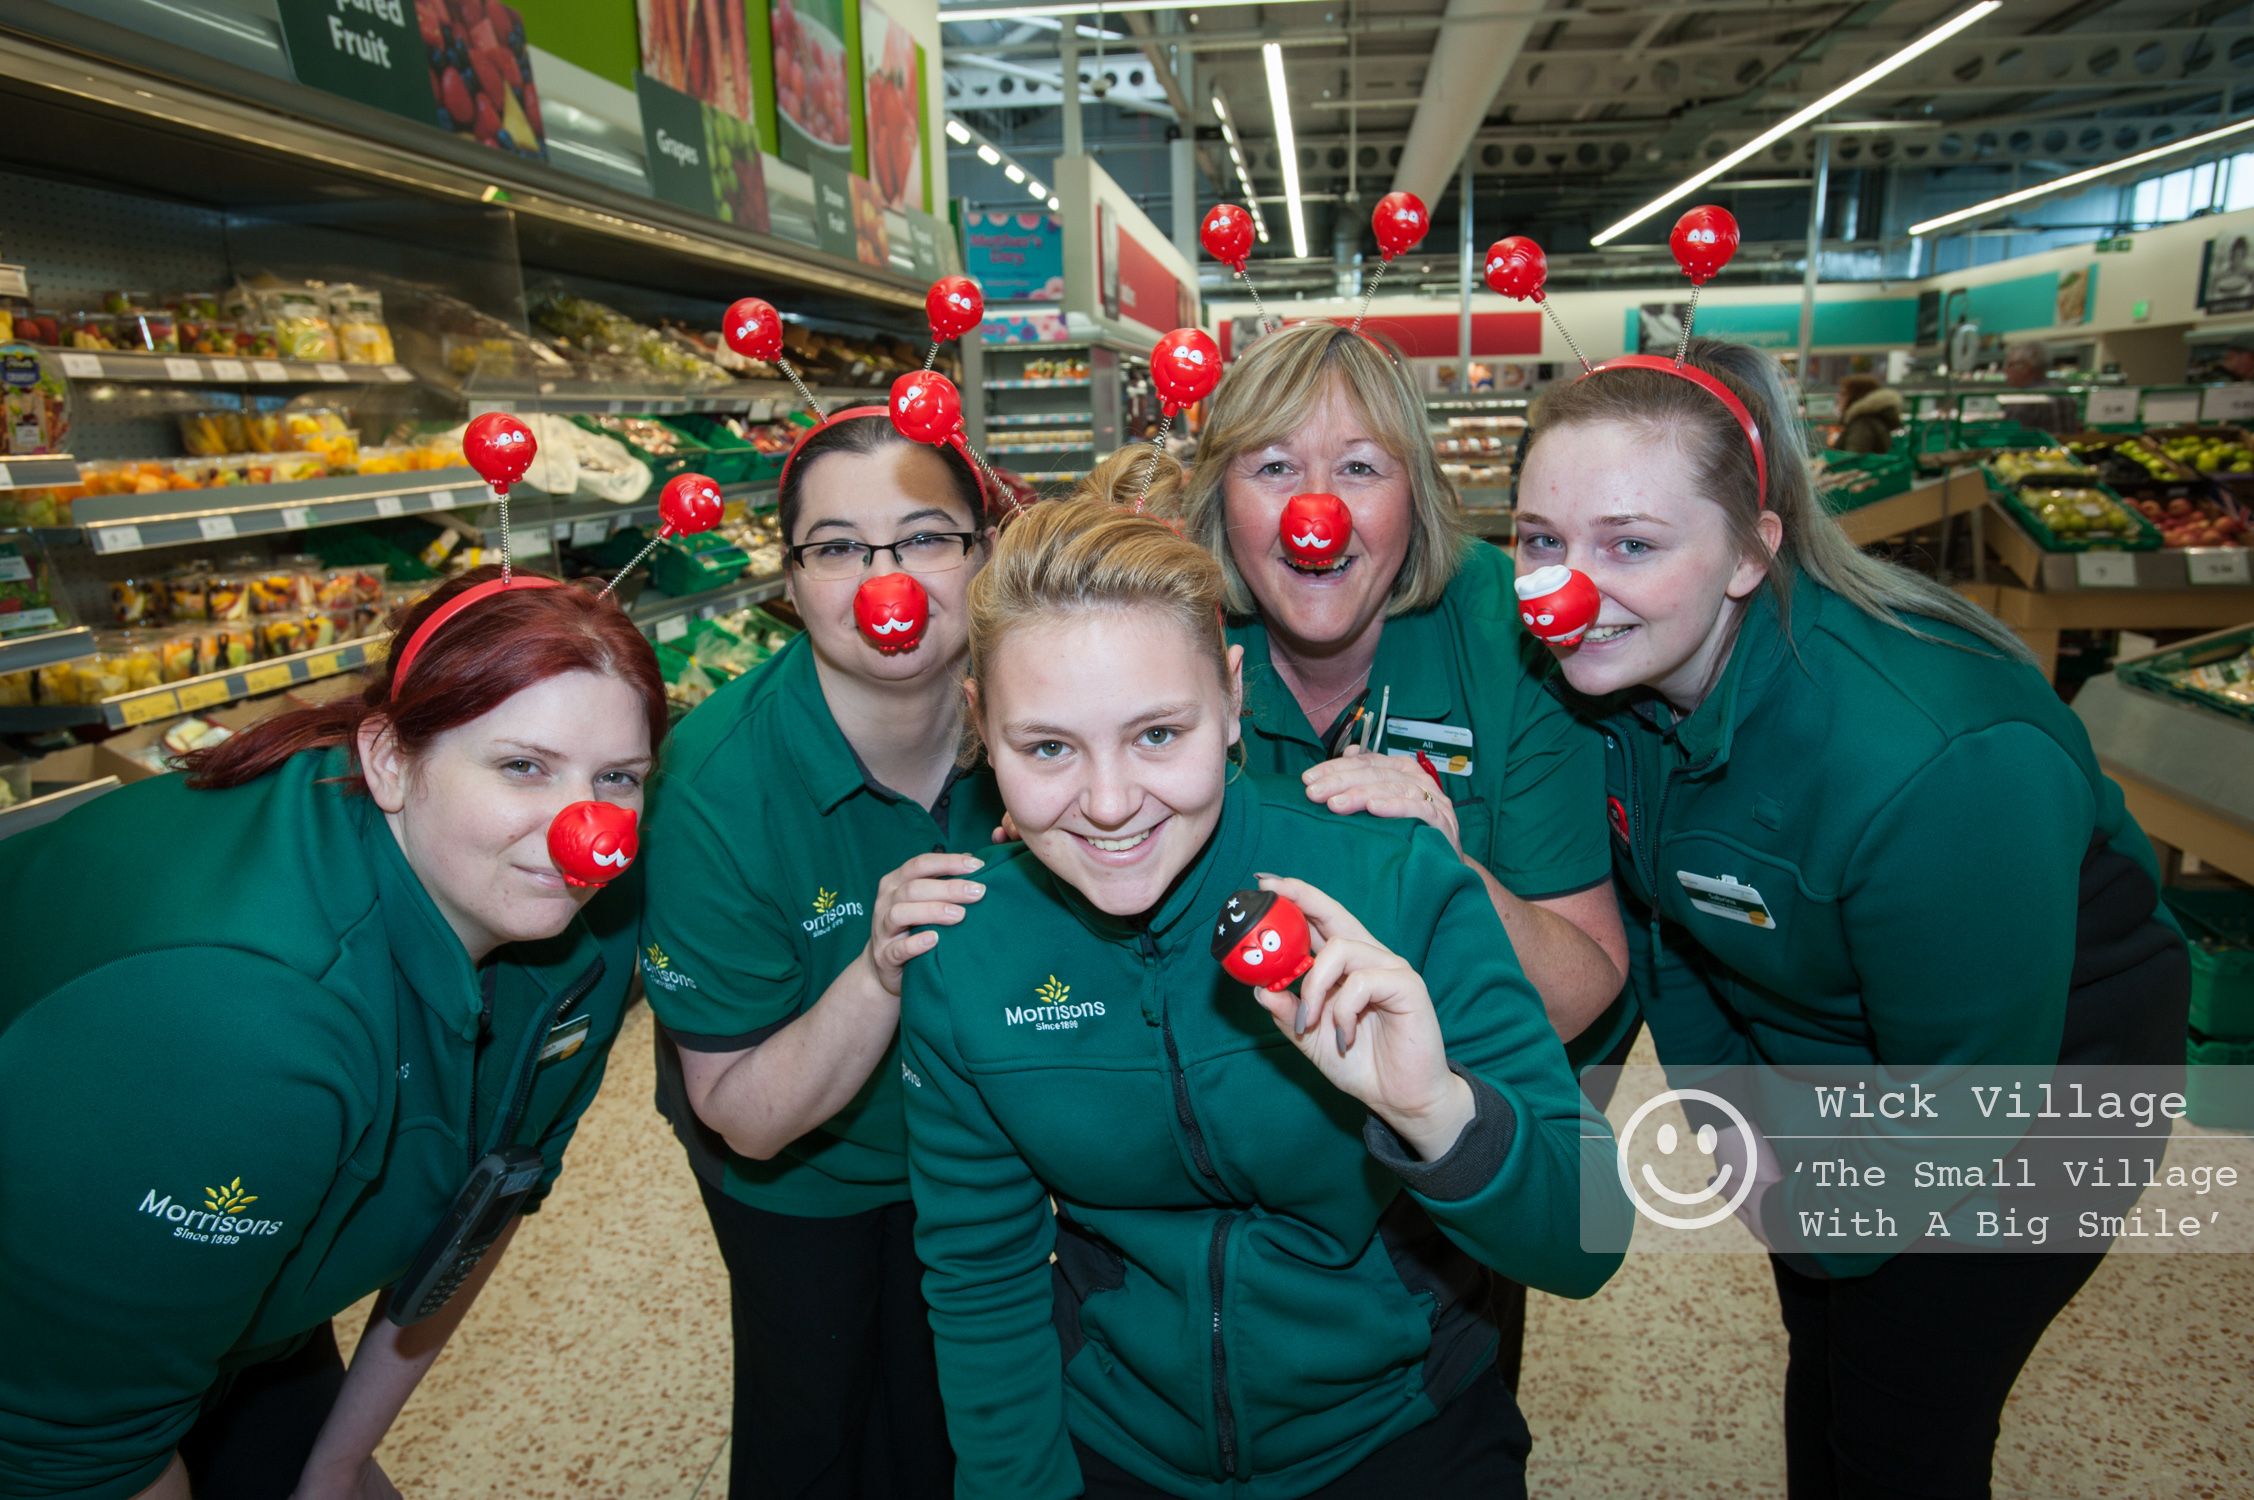 WVT_Red_Nose_Day_20170322-0020-©-Scott-Ramsey-Wick-Village-Traders.jpg